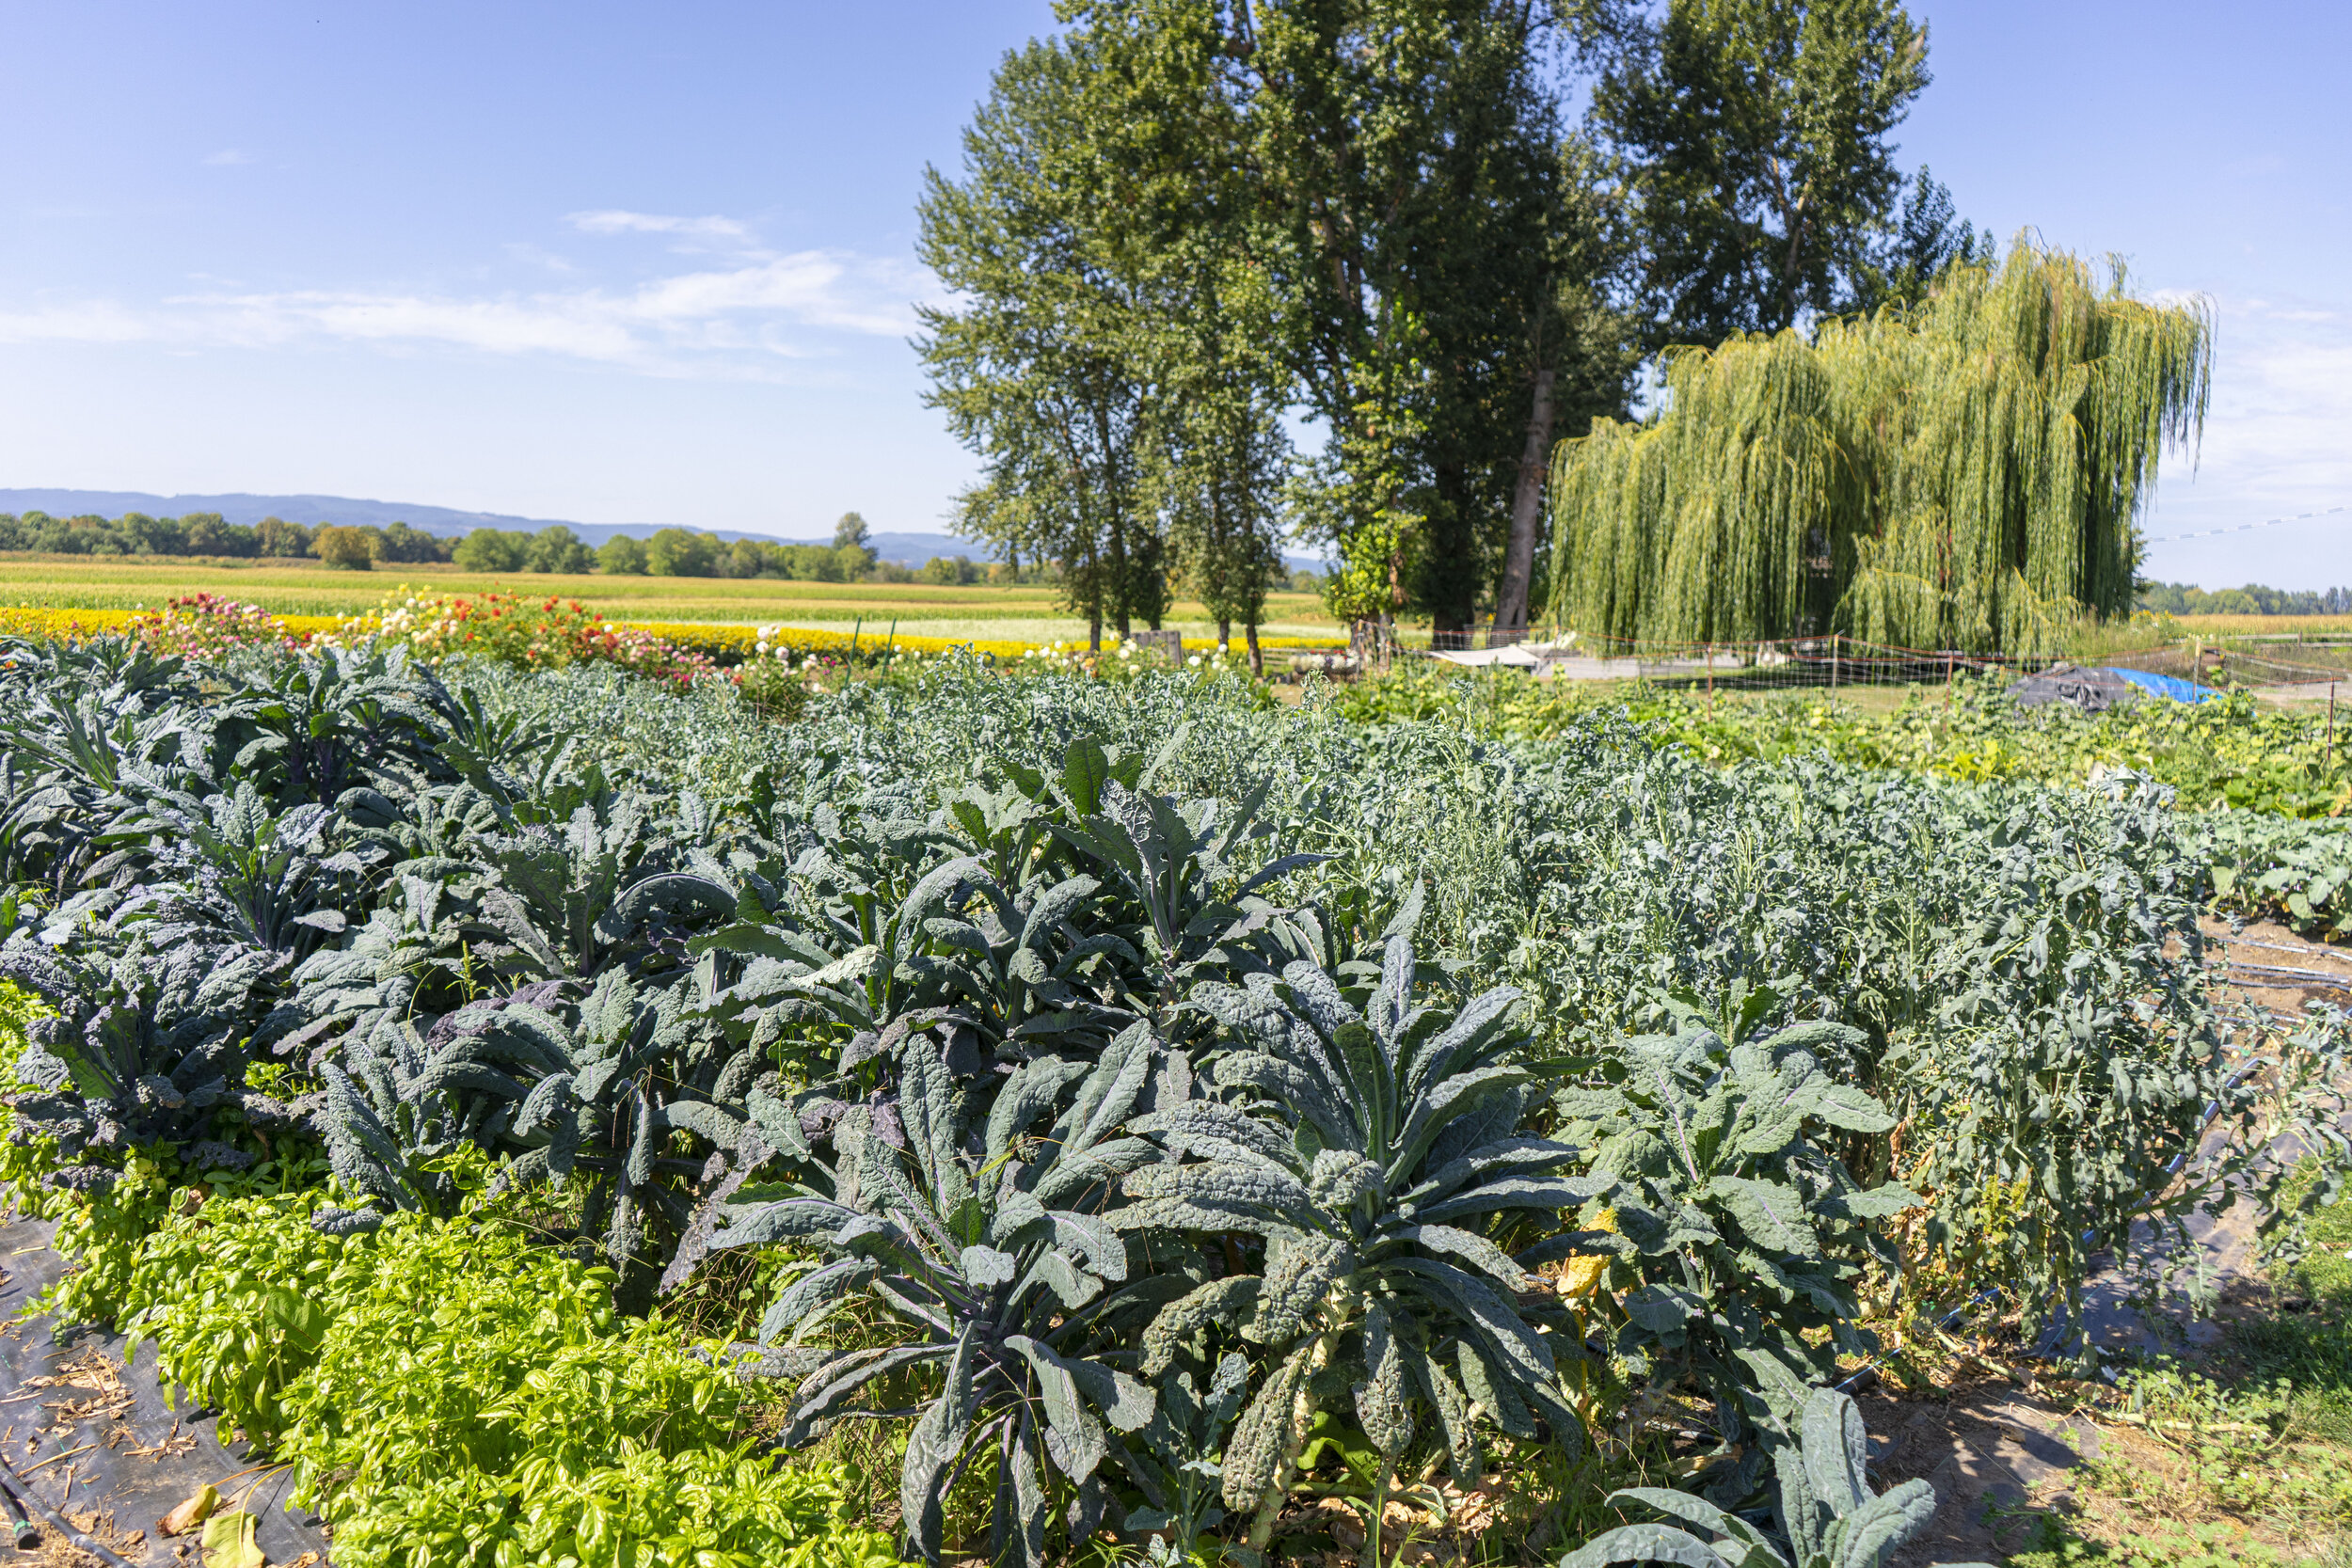 Basil, Kale, and various other crops are located throughout the farms nine acres